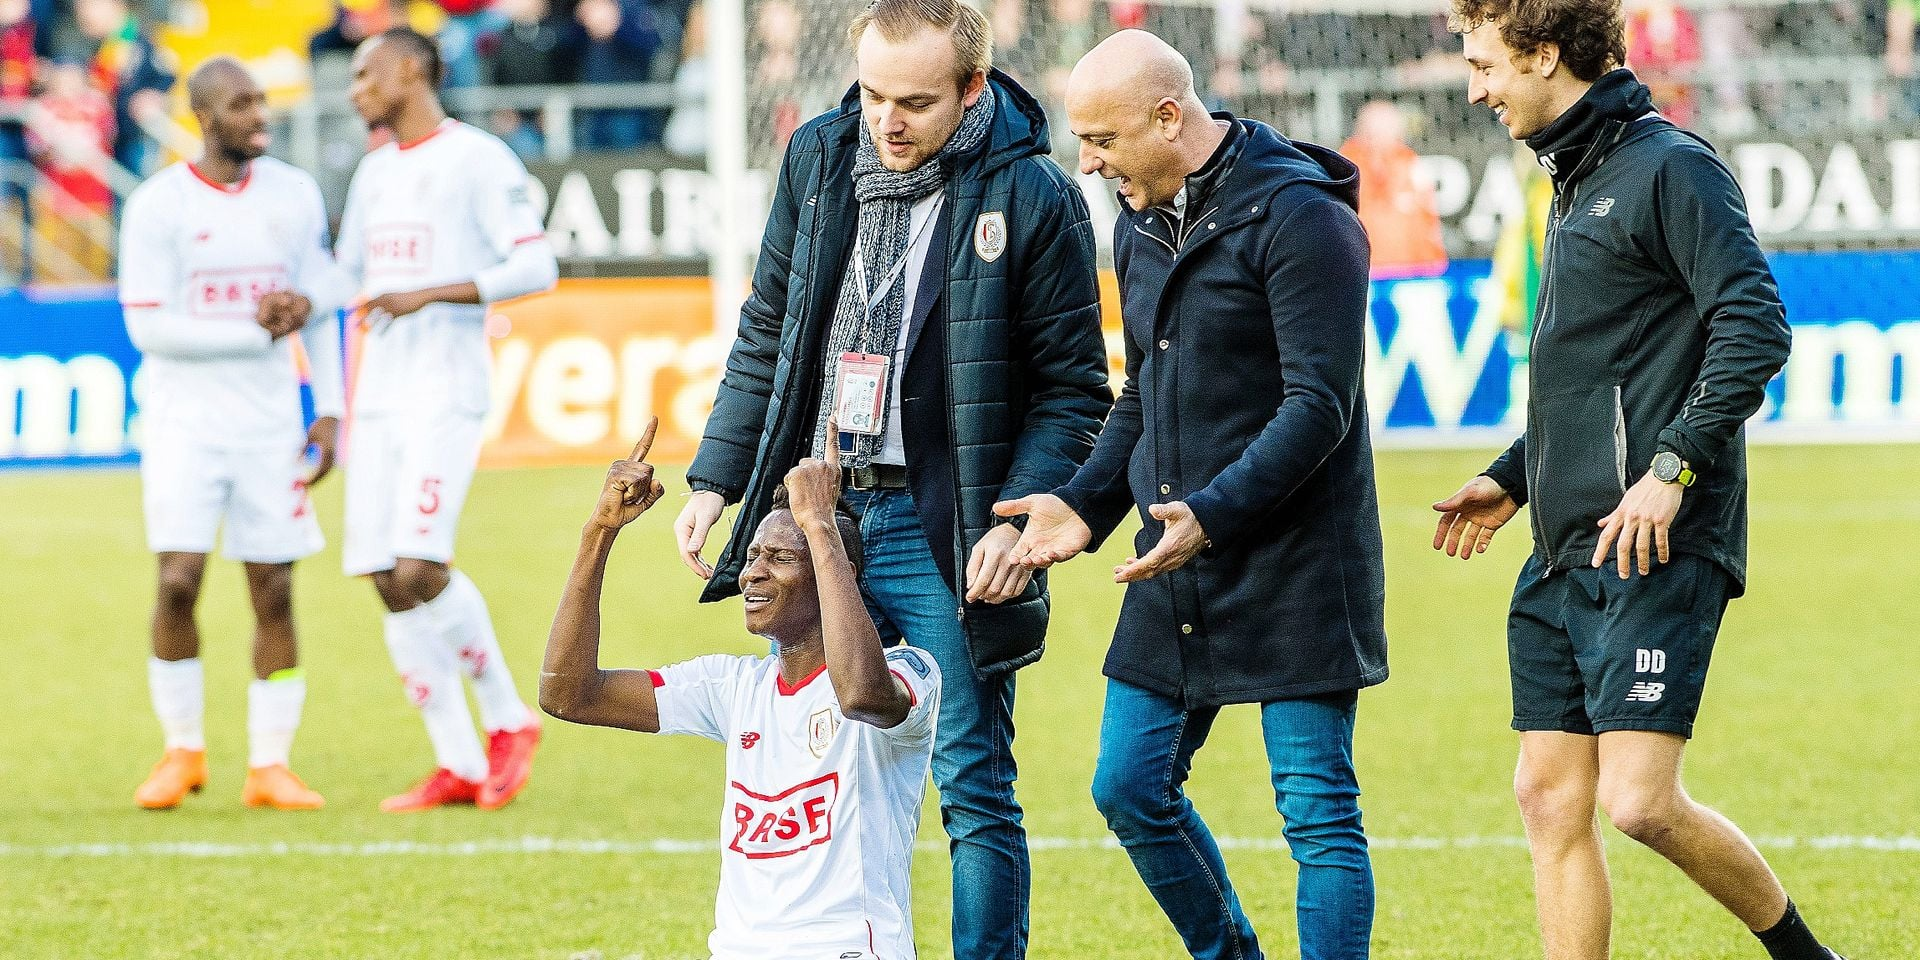 Standard's Moussa Djenepo celebrates after winning the Jupiler Pro League match between KV Oostende and Standard de Liege, in Oostende, Sunday 11 March 2018, on day 30 of the Jupiler Pro League, the Belgian soccer championship season 2017-2018. BELGA PHOTO LAURIE DIEFFEMBACQ